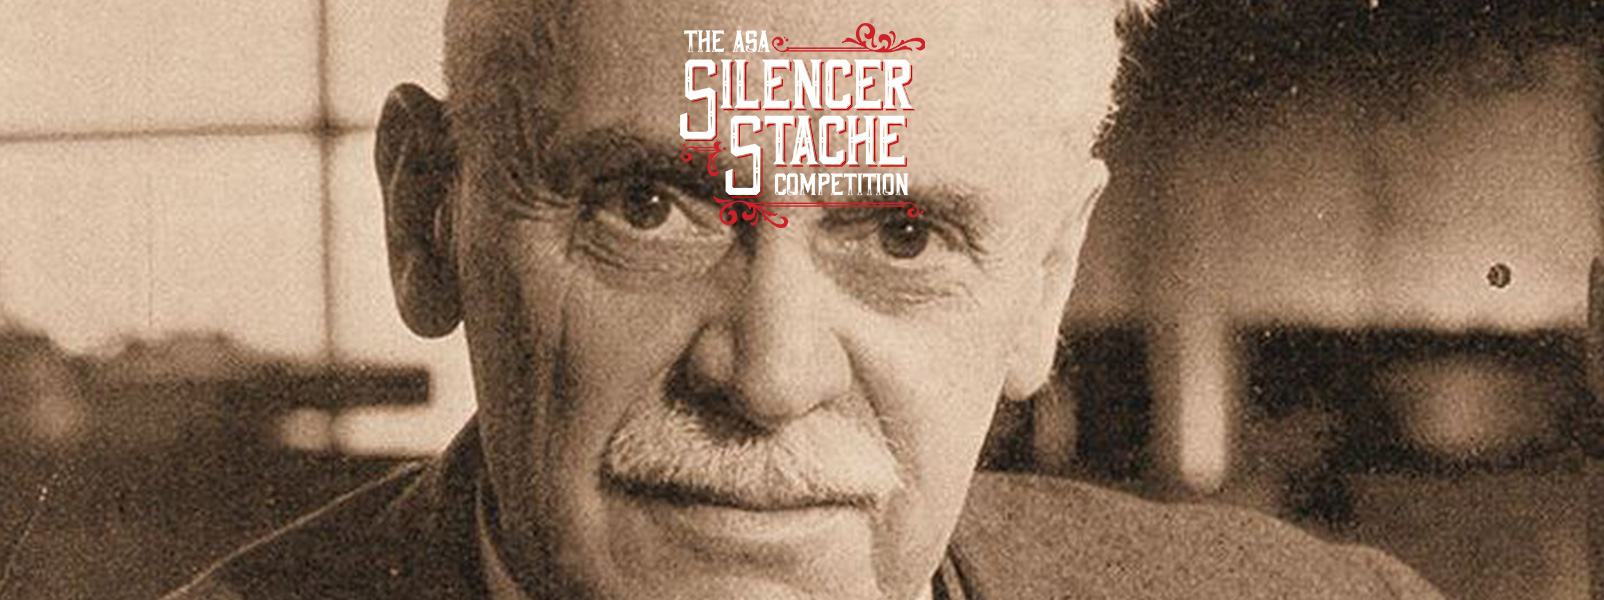 ASA's Silencer Stache Competition